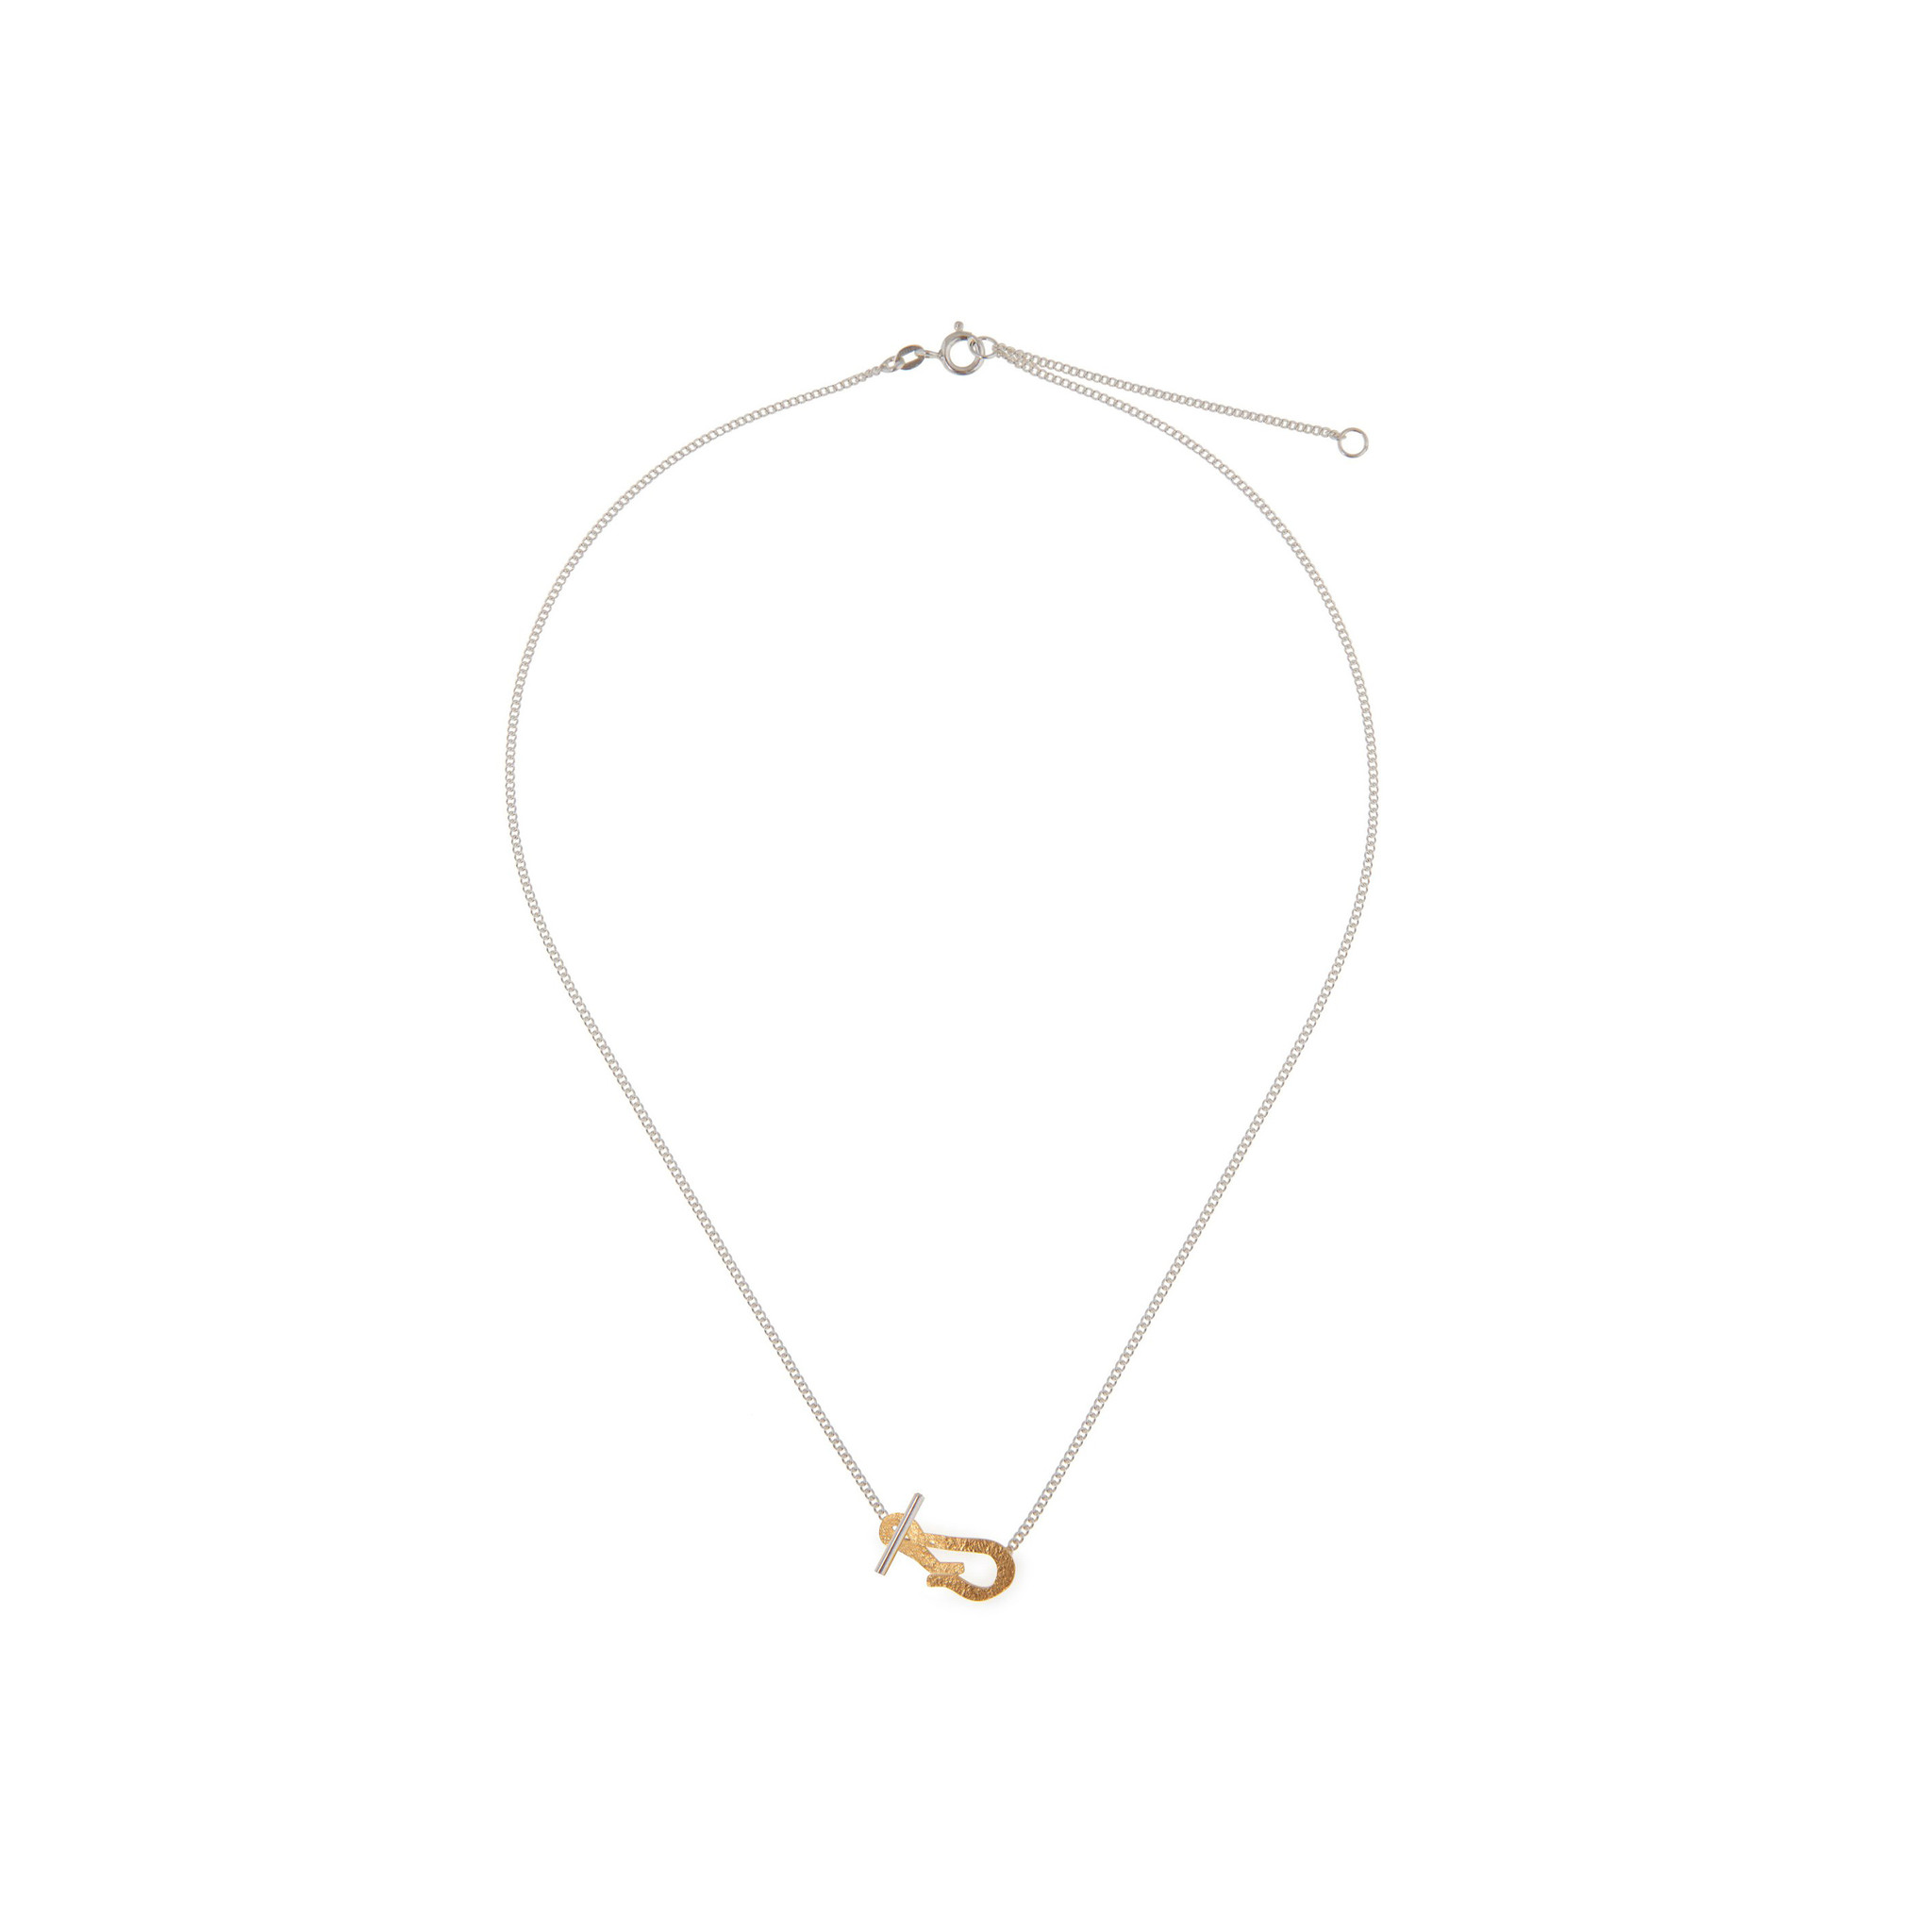 Elegant necklace with clasp